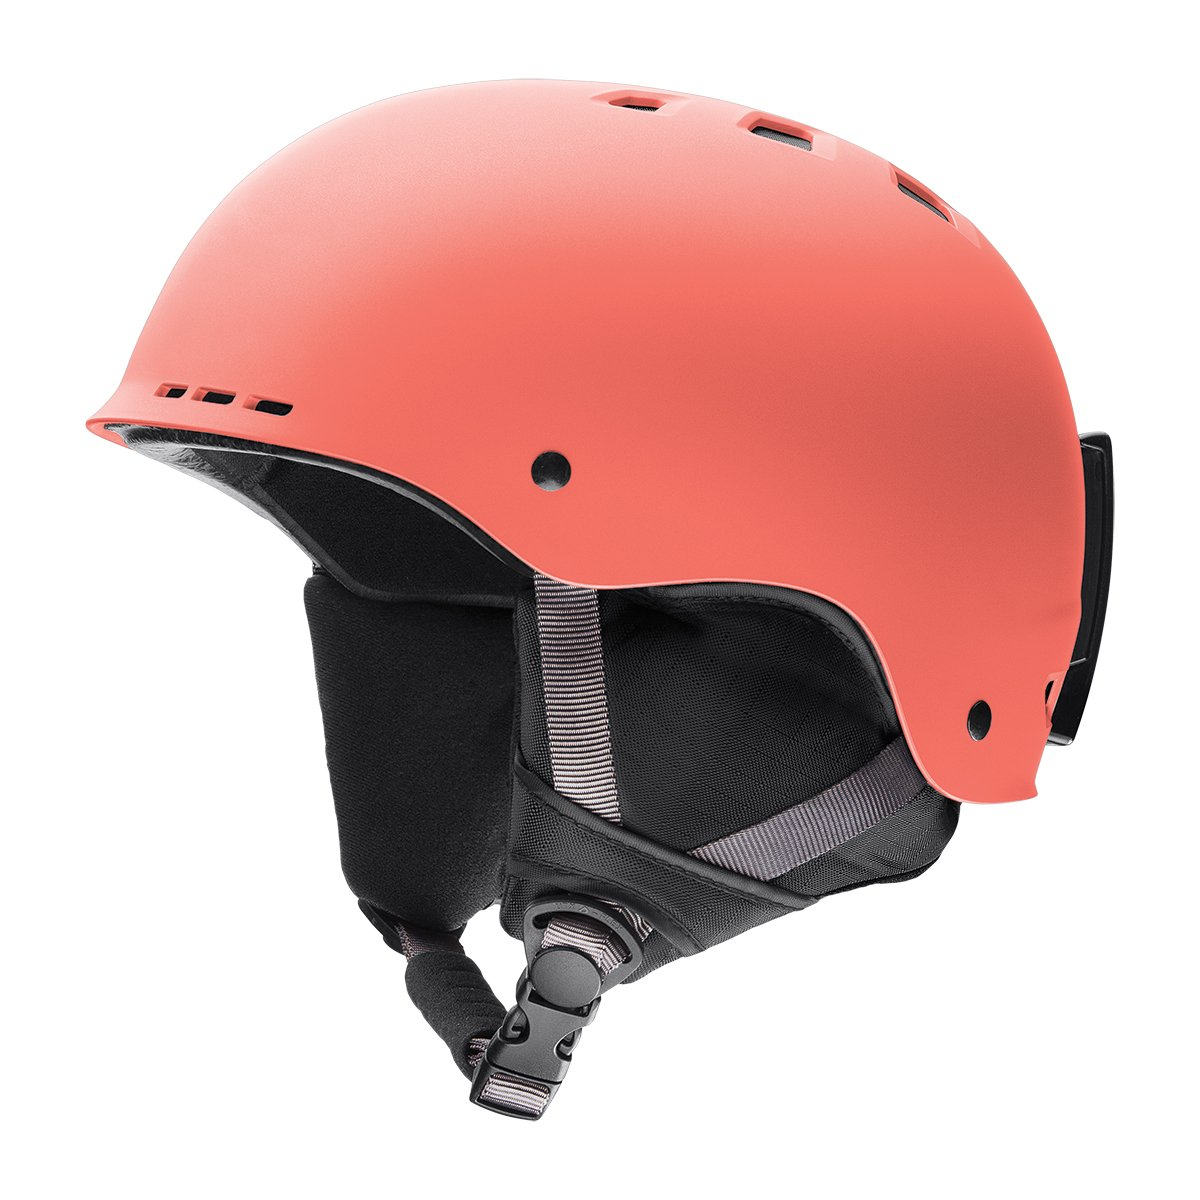 Smith Optics Smith Adultos Casco Holt 2: Amazon.es: Deportes y aire libre